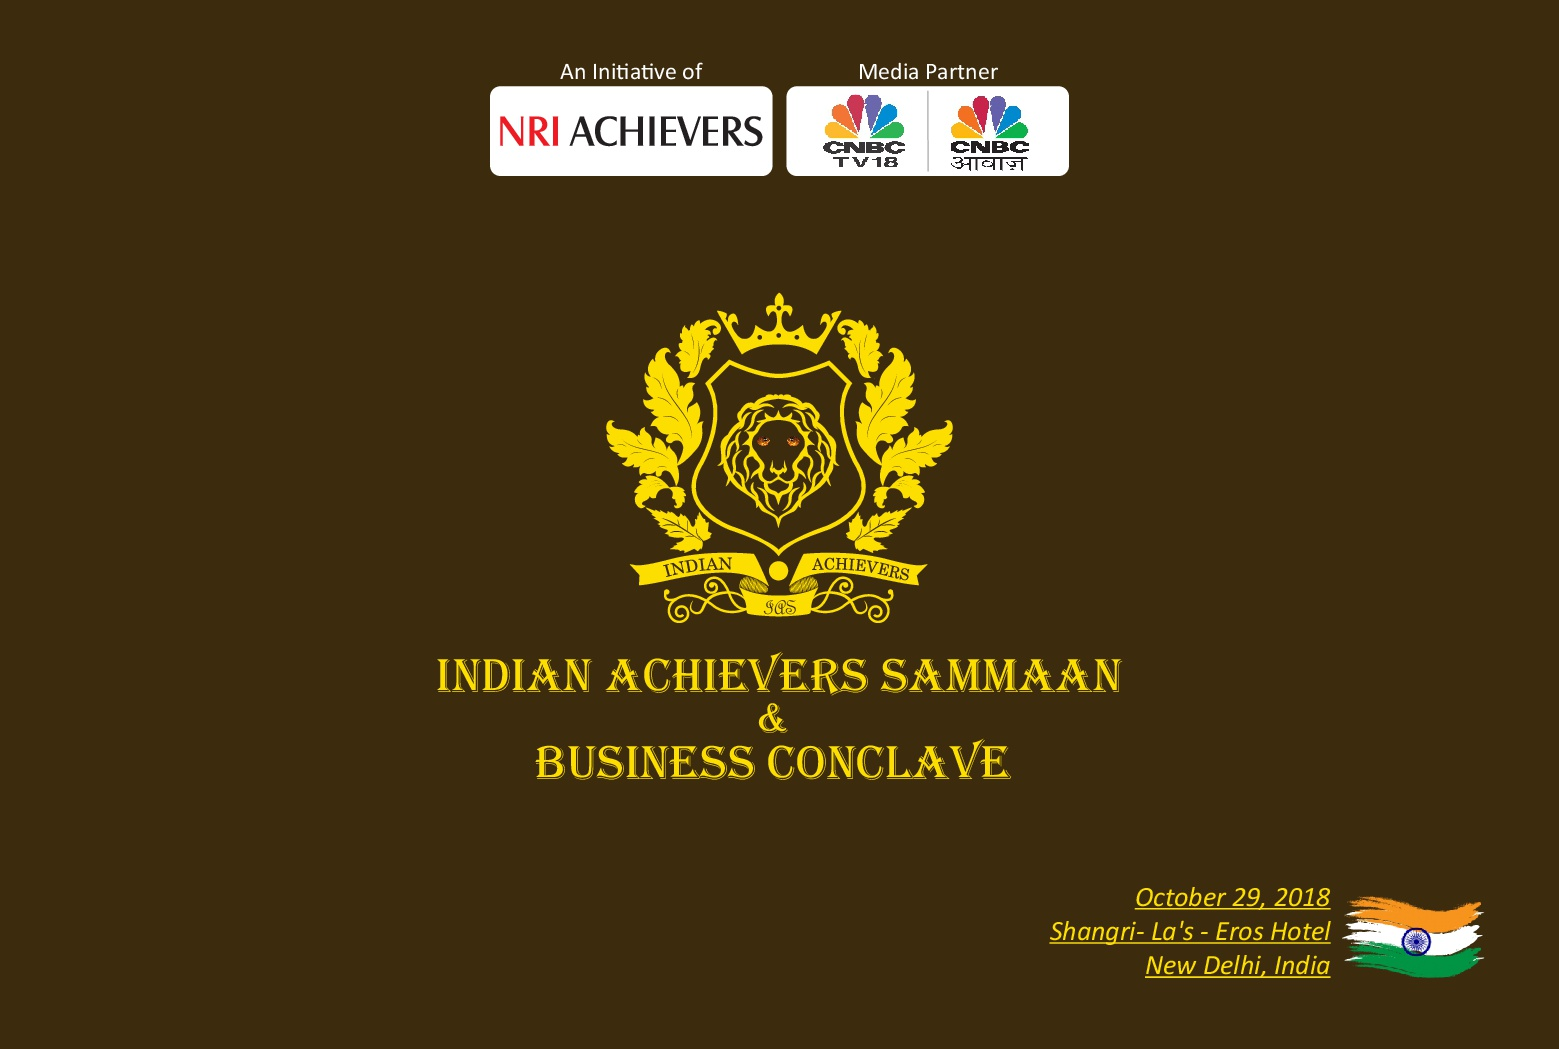 Indian-Achievers-Sammaan-&-Business-Conclave2018-001